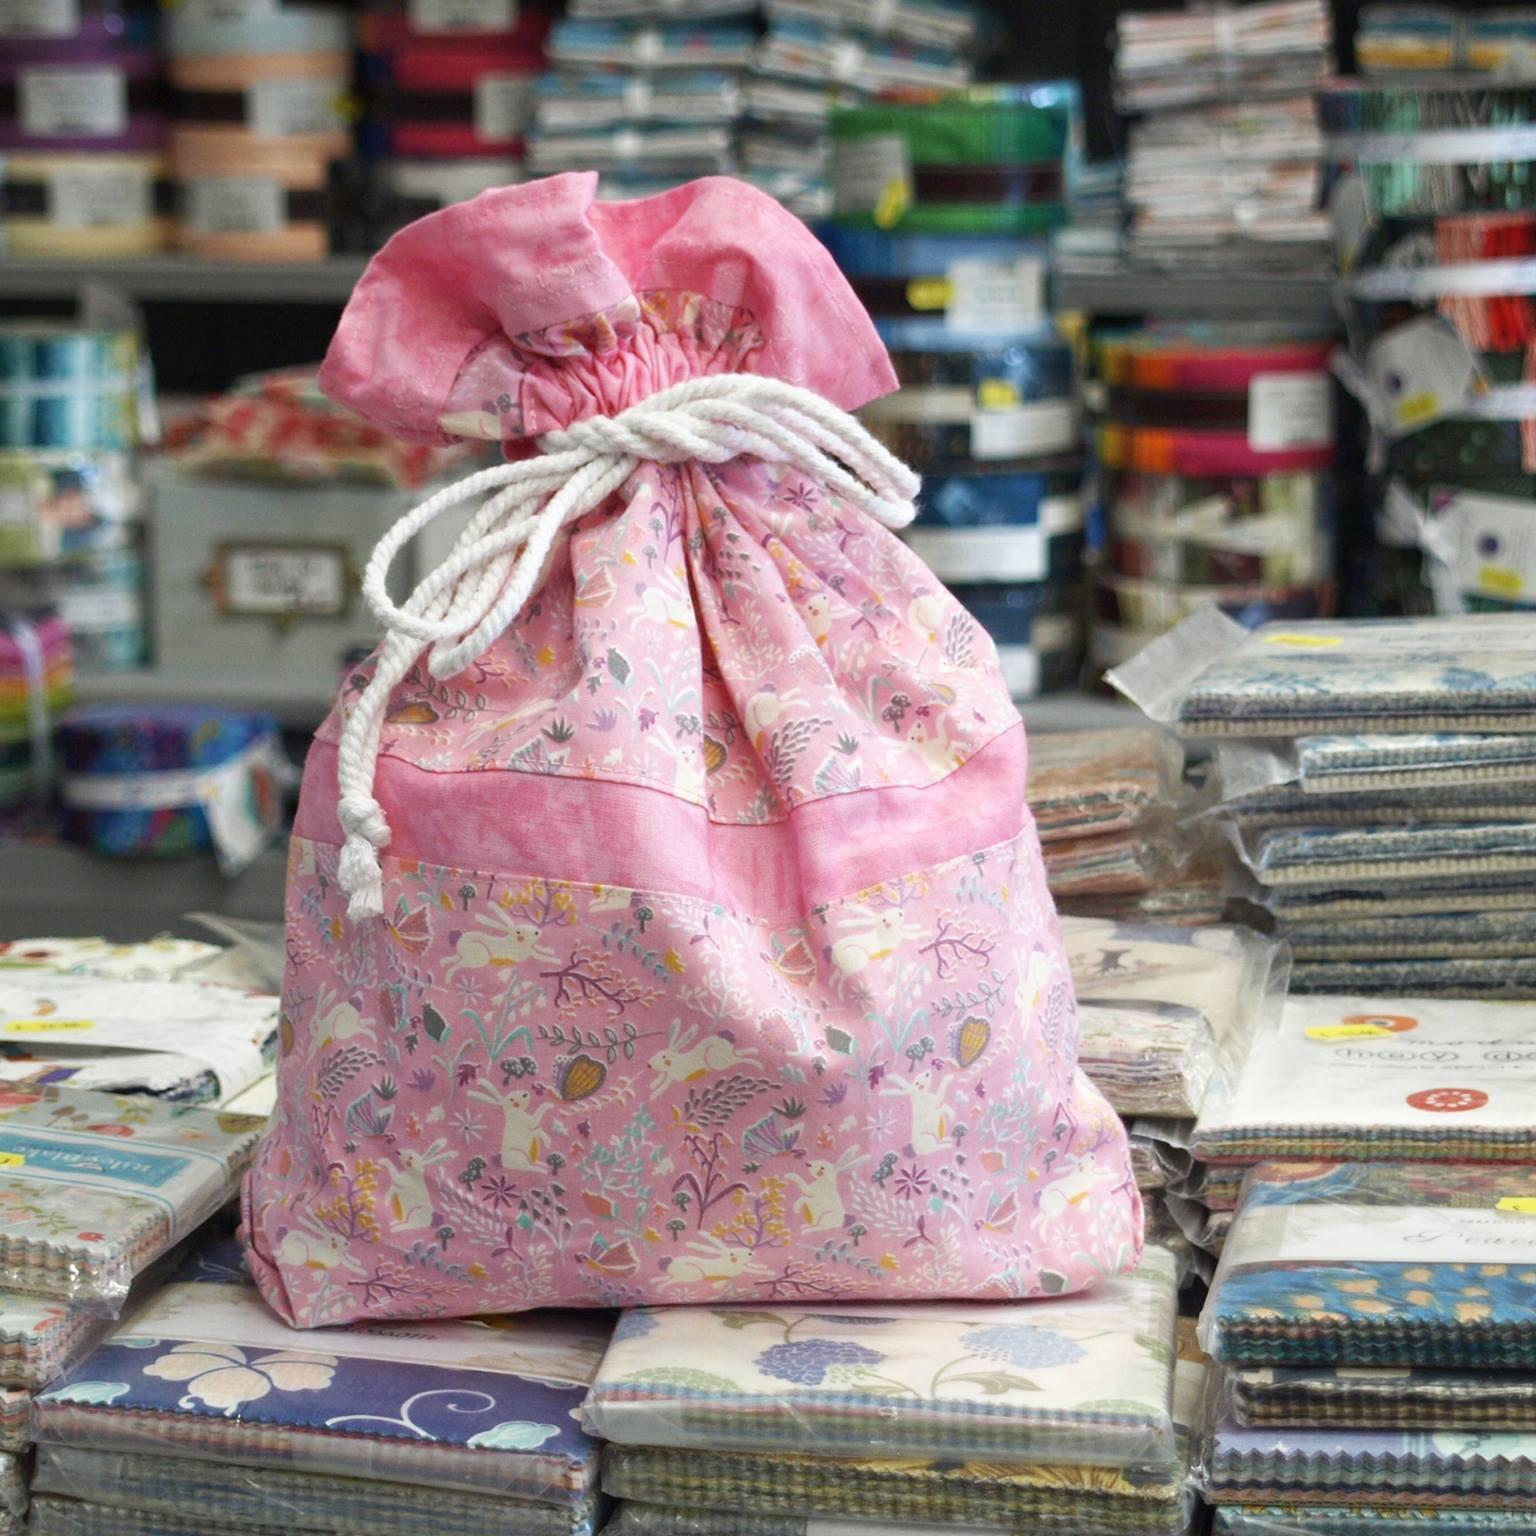 Make a drawstring bag with Sandra - Monday 11th June-Sewing Class-Fabric Mouse-Fabric Mouse